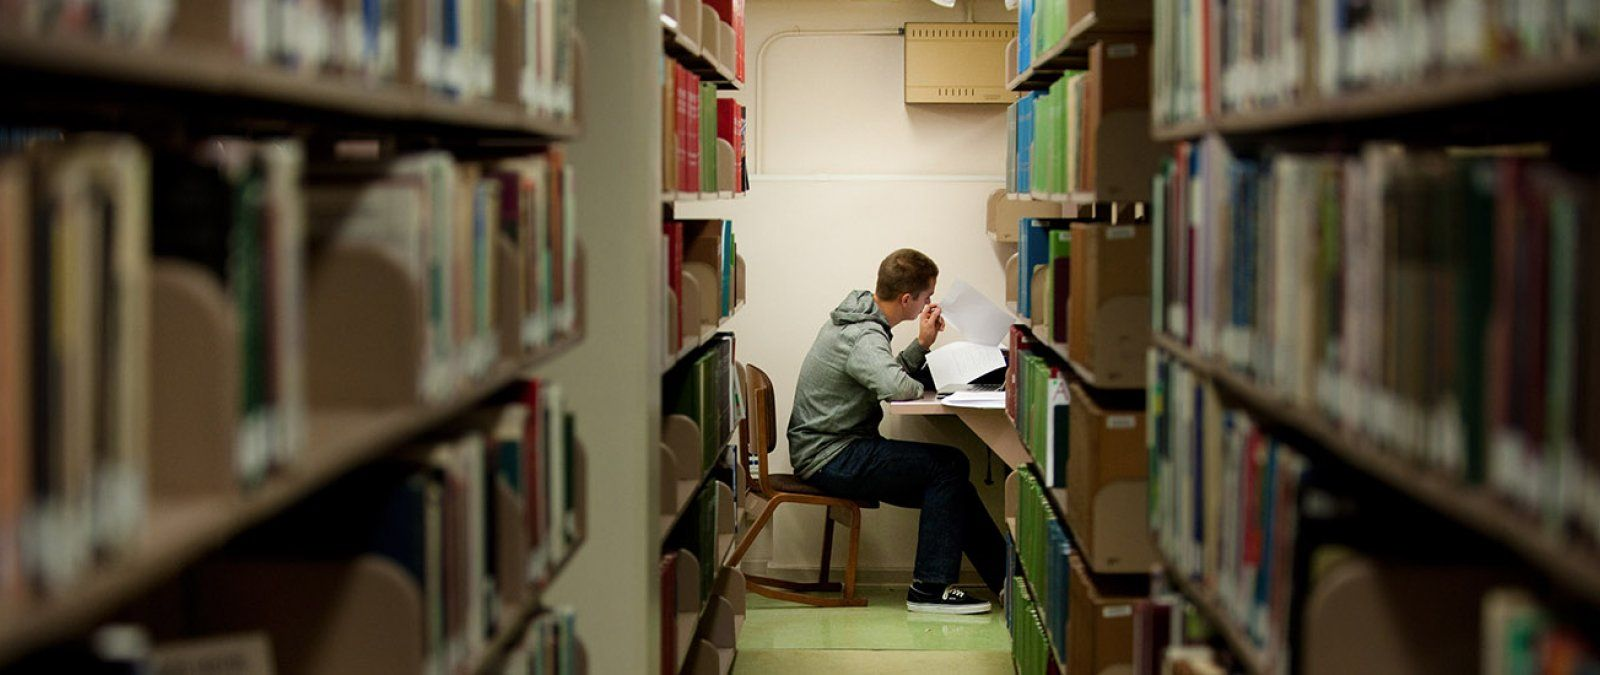 A male student sits studying at a long row of library stacks